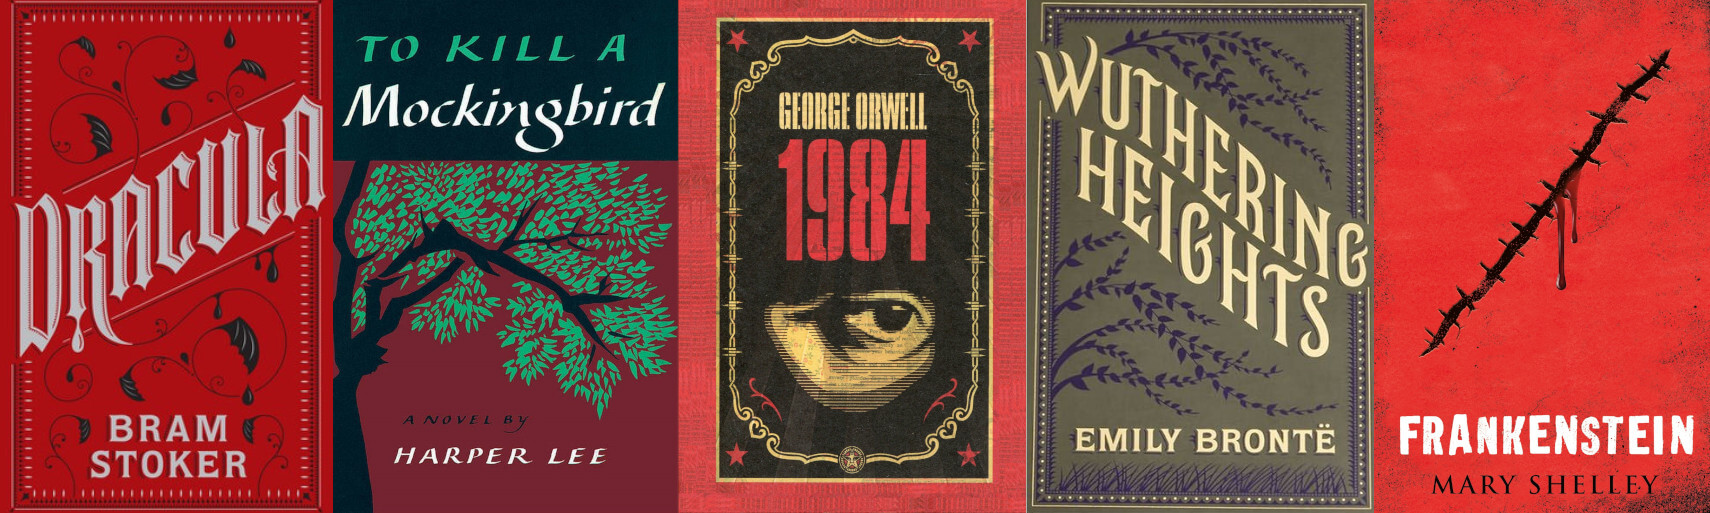 Banner_10_Best_Books_All_Time